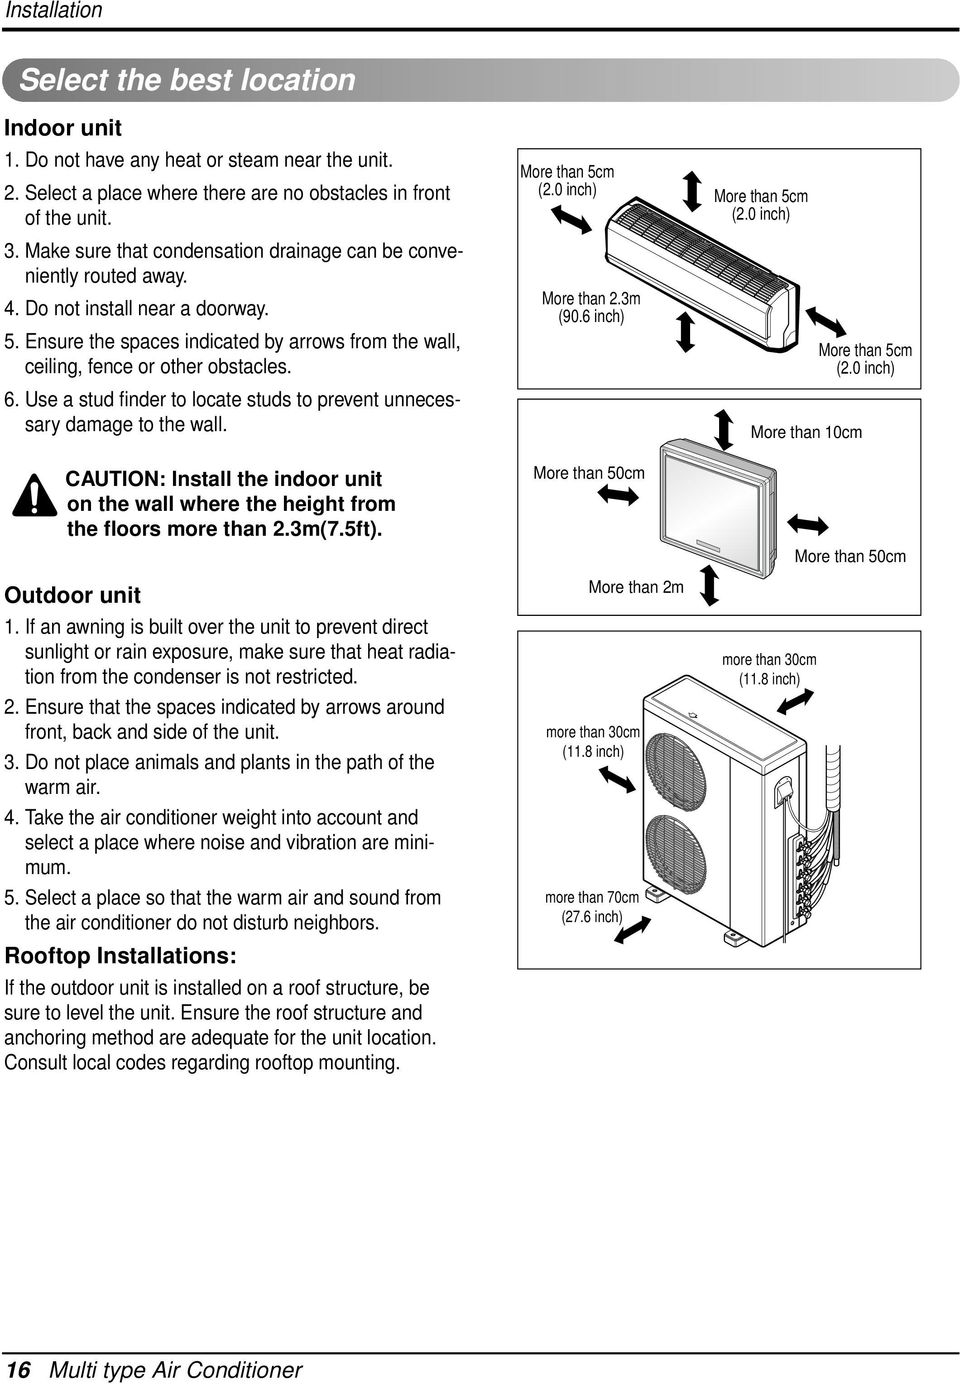 Lg Multi Type Air Conditioner Pdf Outside A C Condenser Unit Wiring Diagram Use Stud Finder To Locate Studs Prevent Unnecessary Damage The Wall Caution